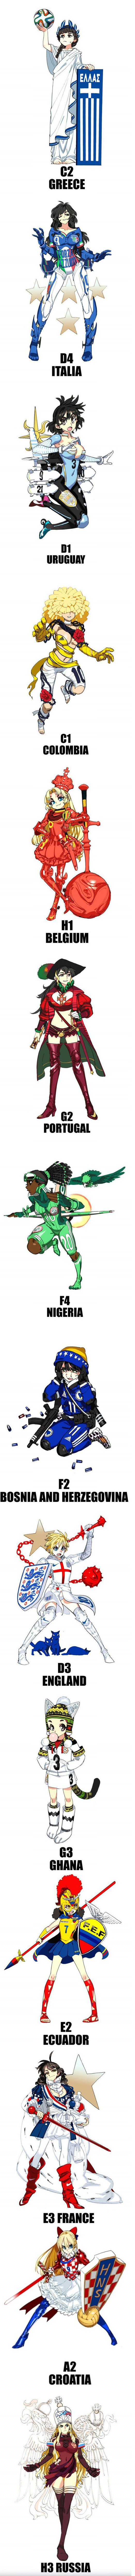 World Cup hosts as anime vixens.